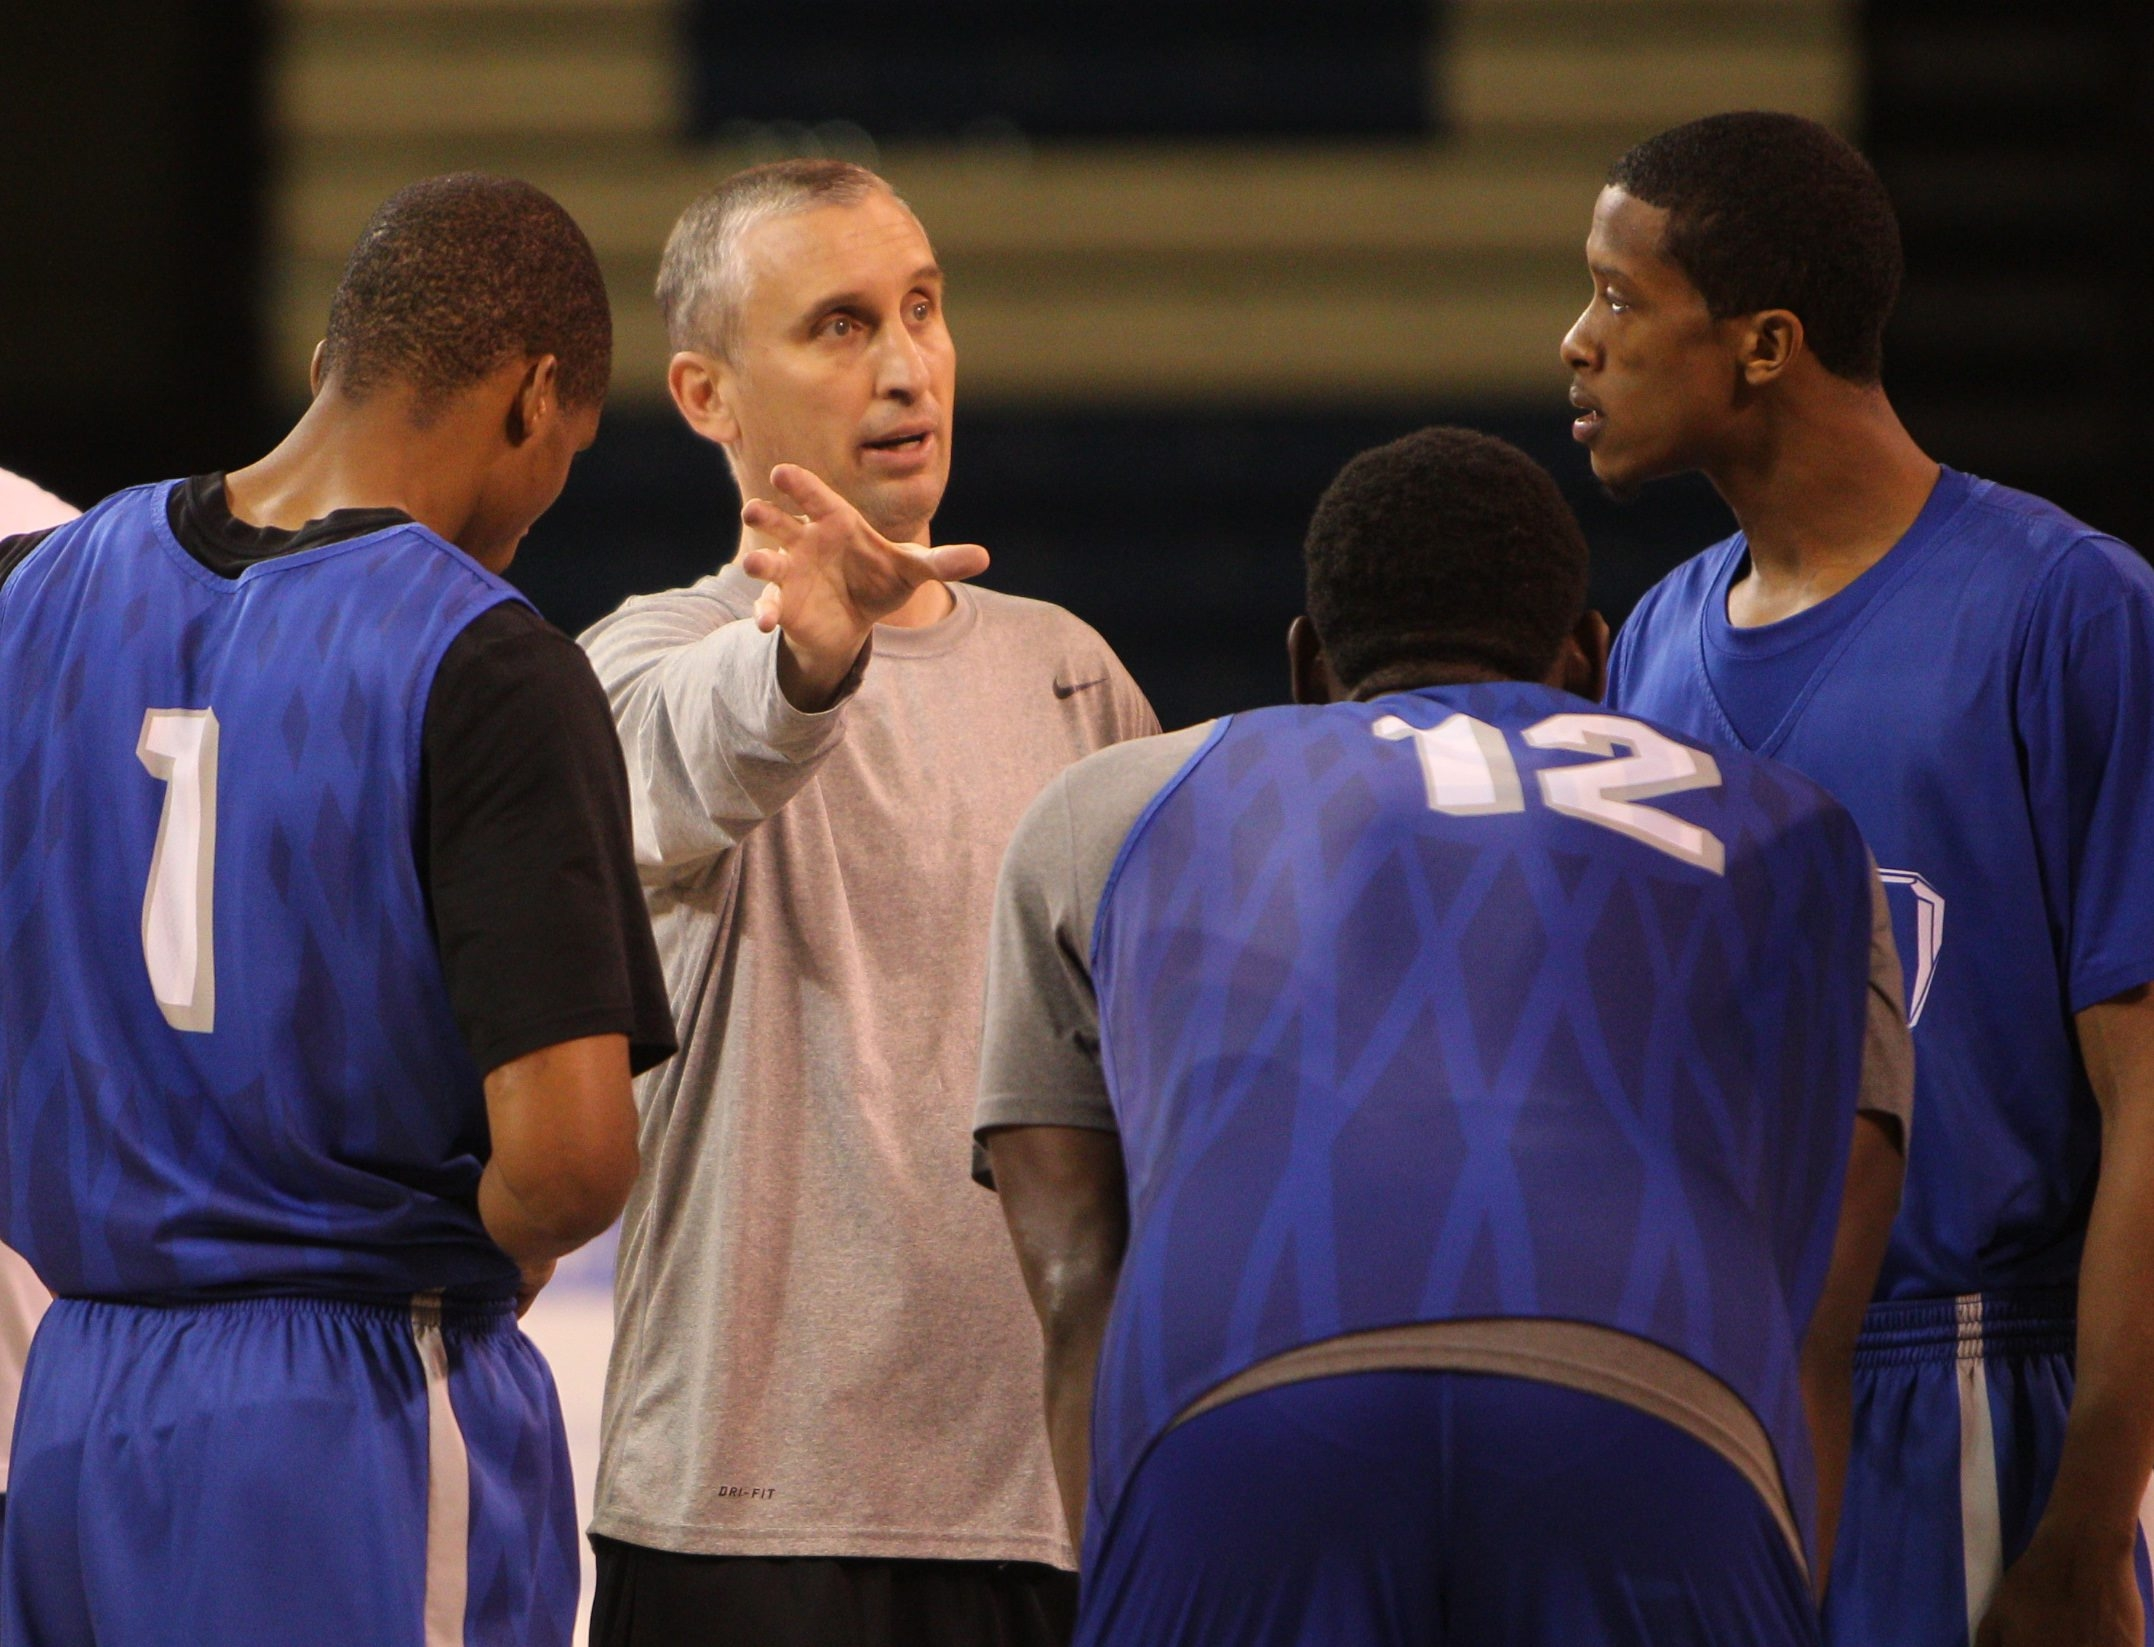 UB coach Bobby Hurley has changed the offensive strategy entering the season opener at Texas A&M.